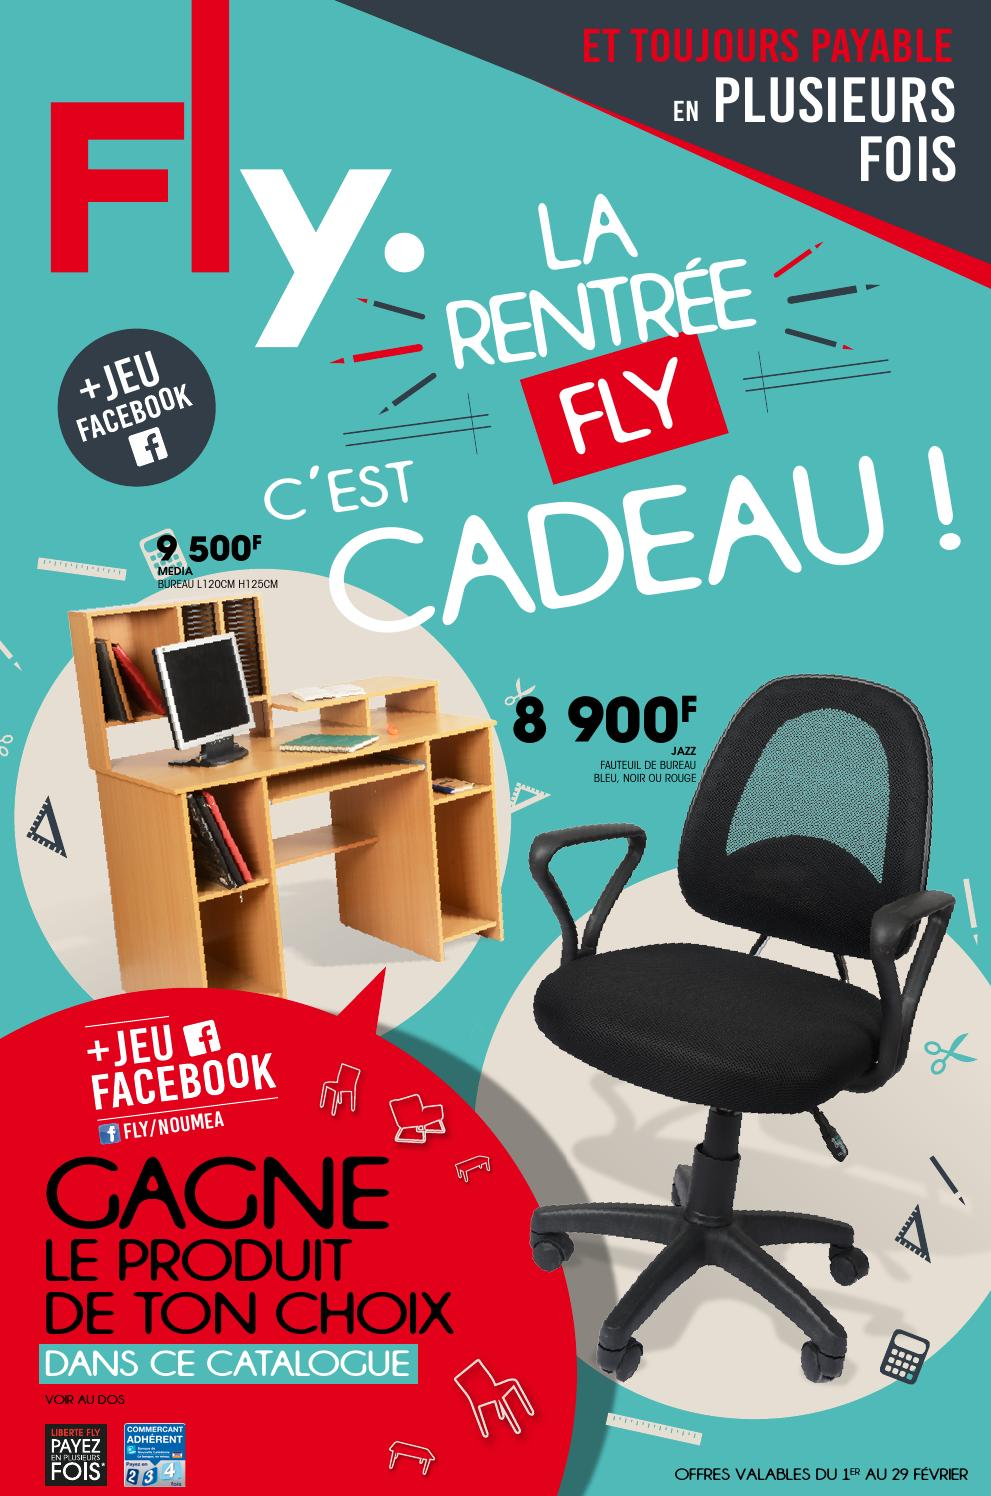 Catalogue Fly Rentree 2016 By Cliquez Ici Issuu